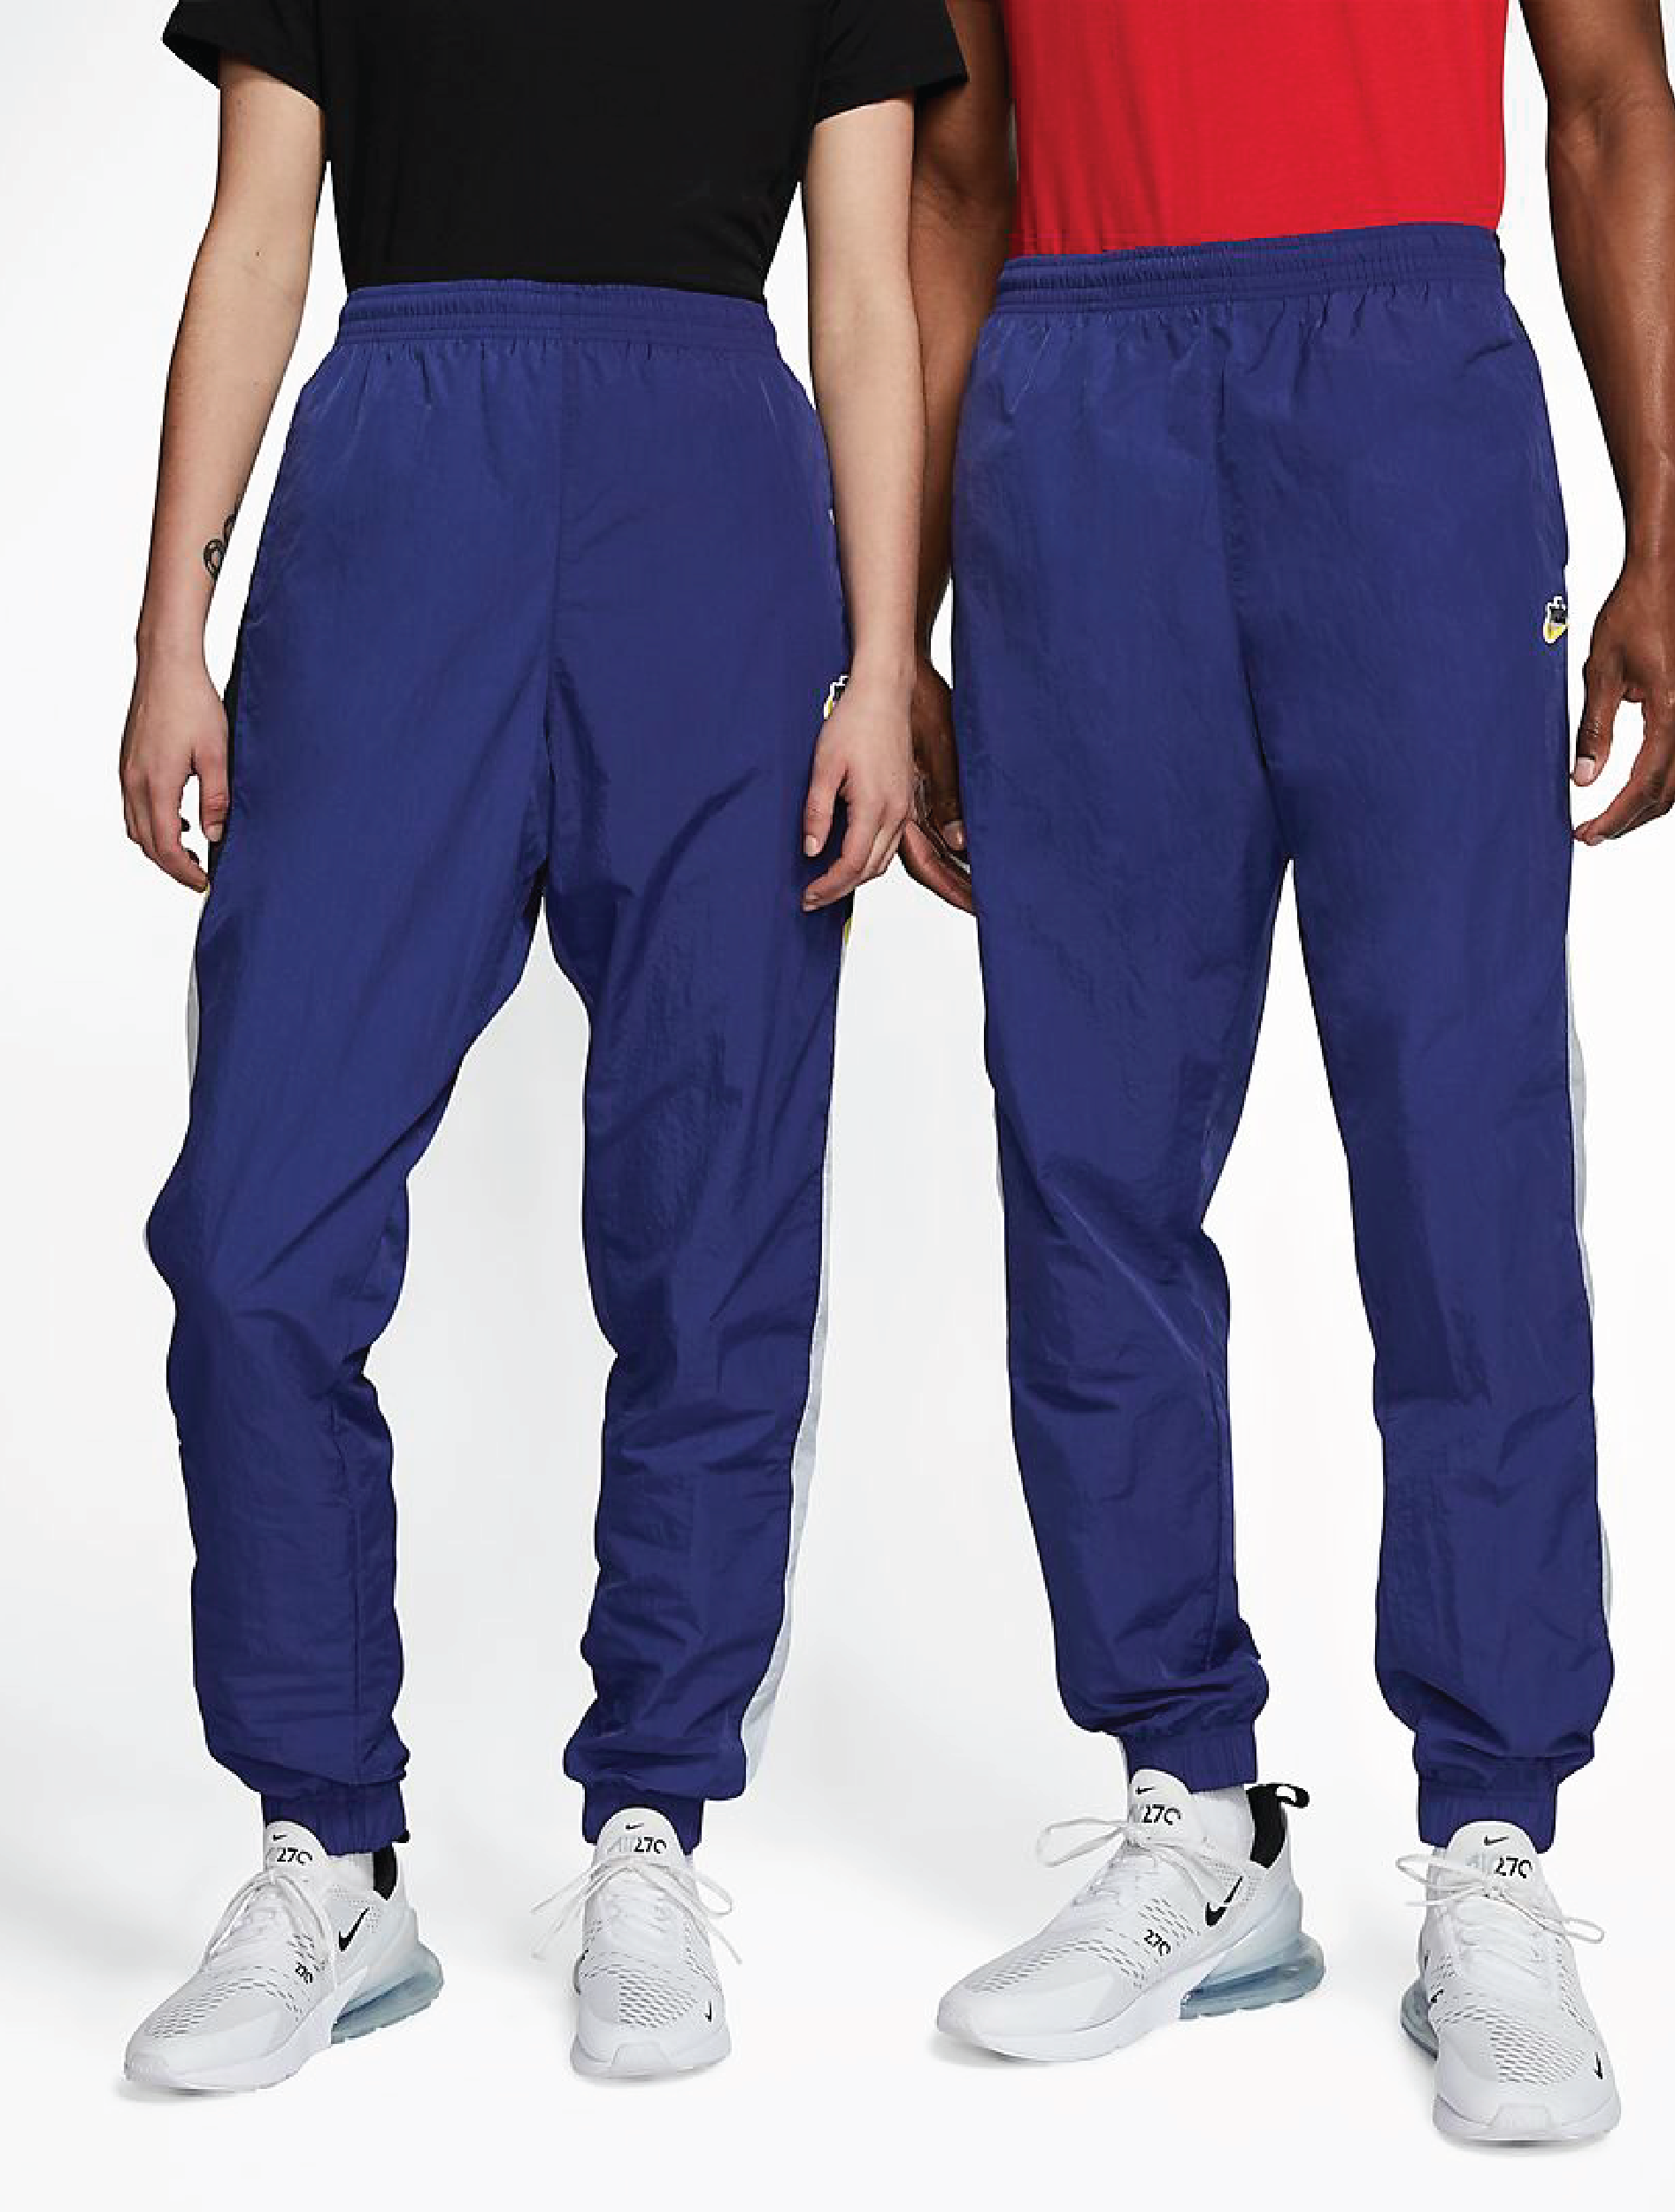 Two models wearing the blue pants with sneakers